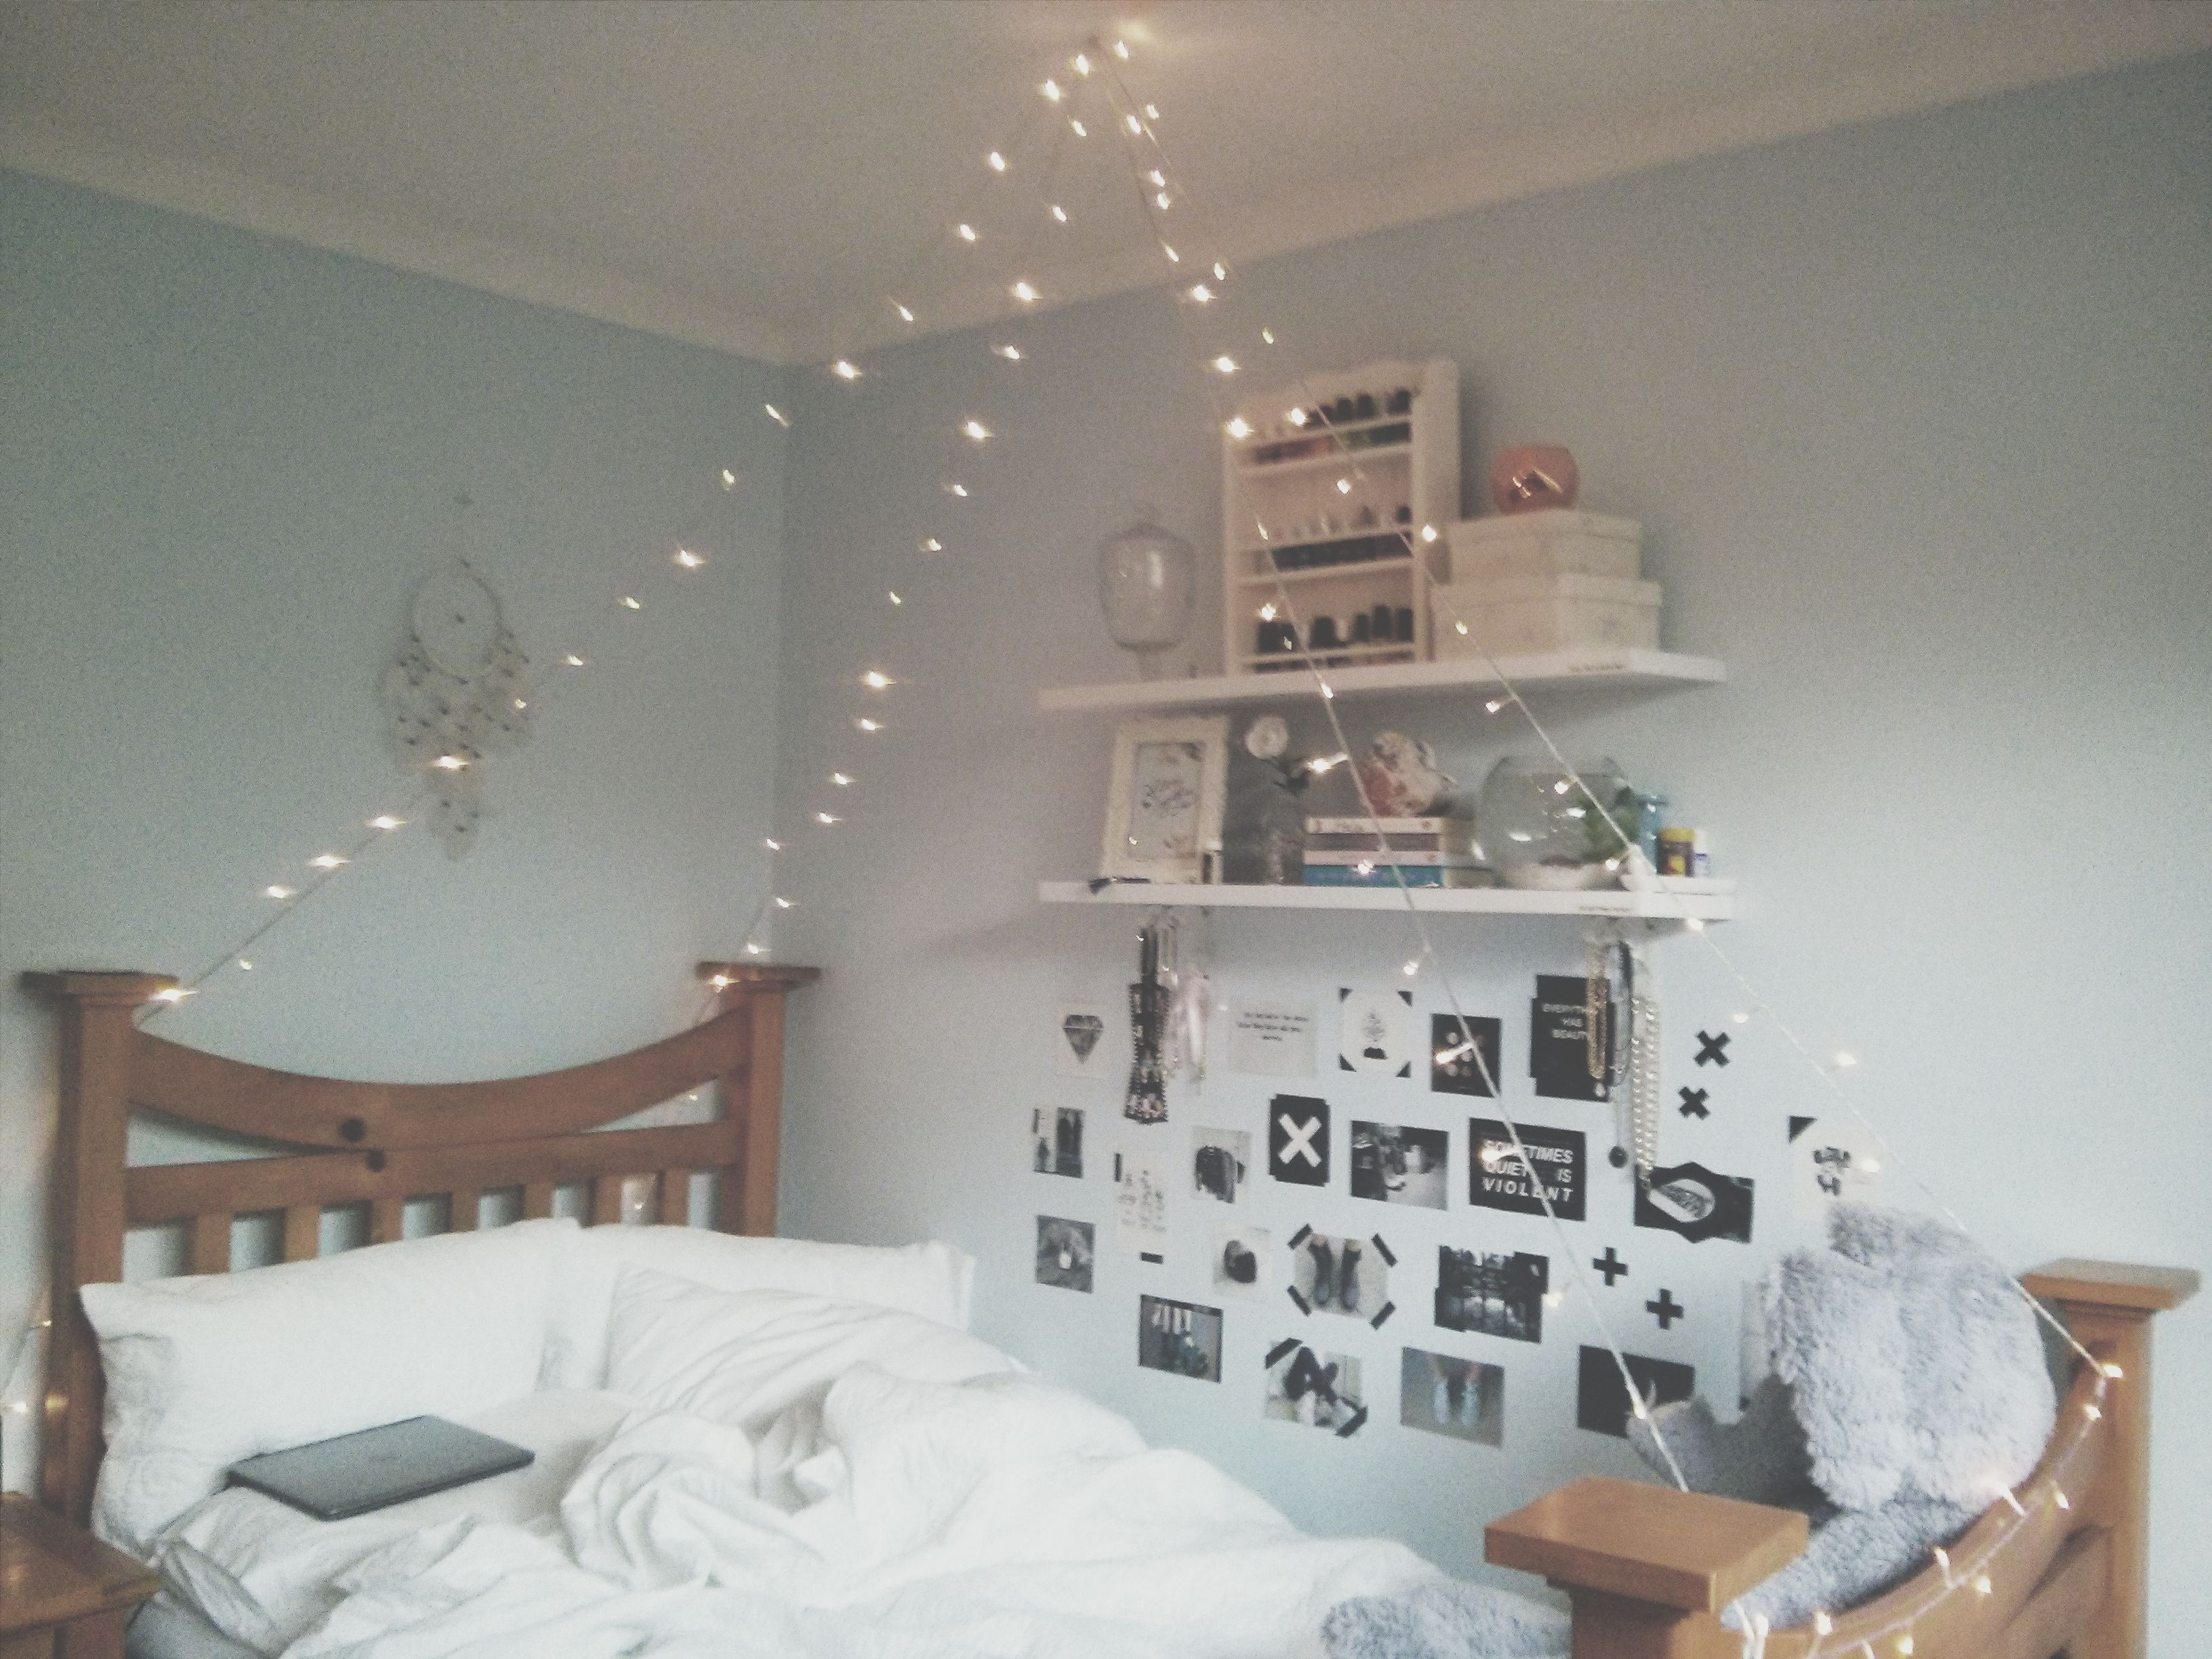 White bedroom ideas tumblr - Tumblr Bedrooms Inside Tumblr Bedroom Ideas Tumblr